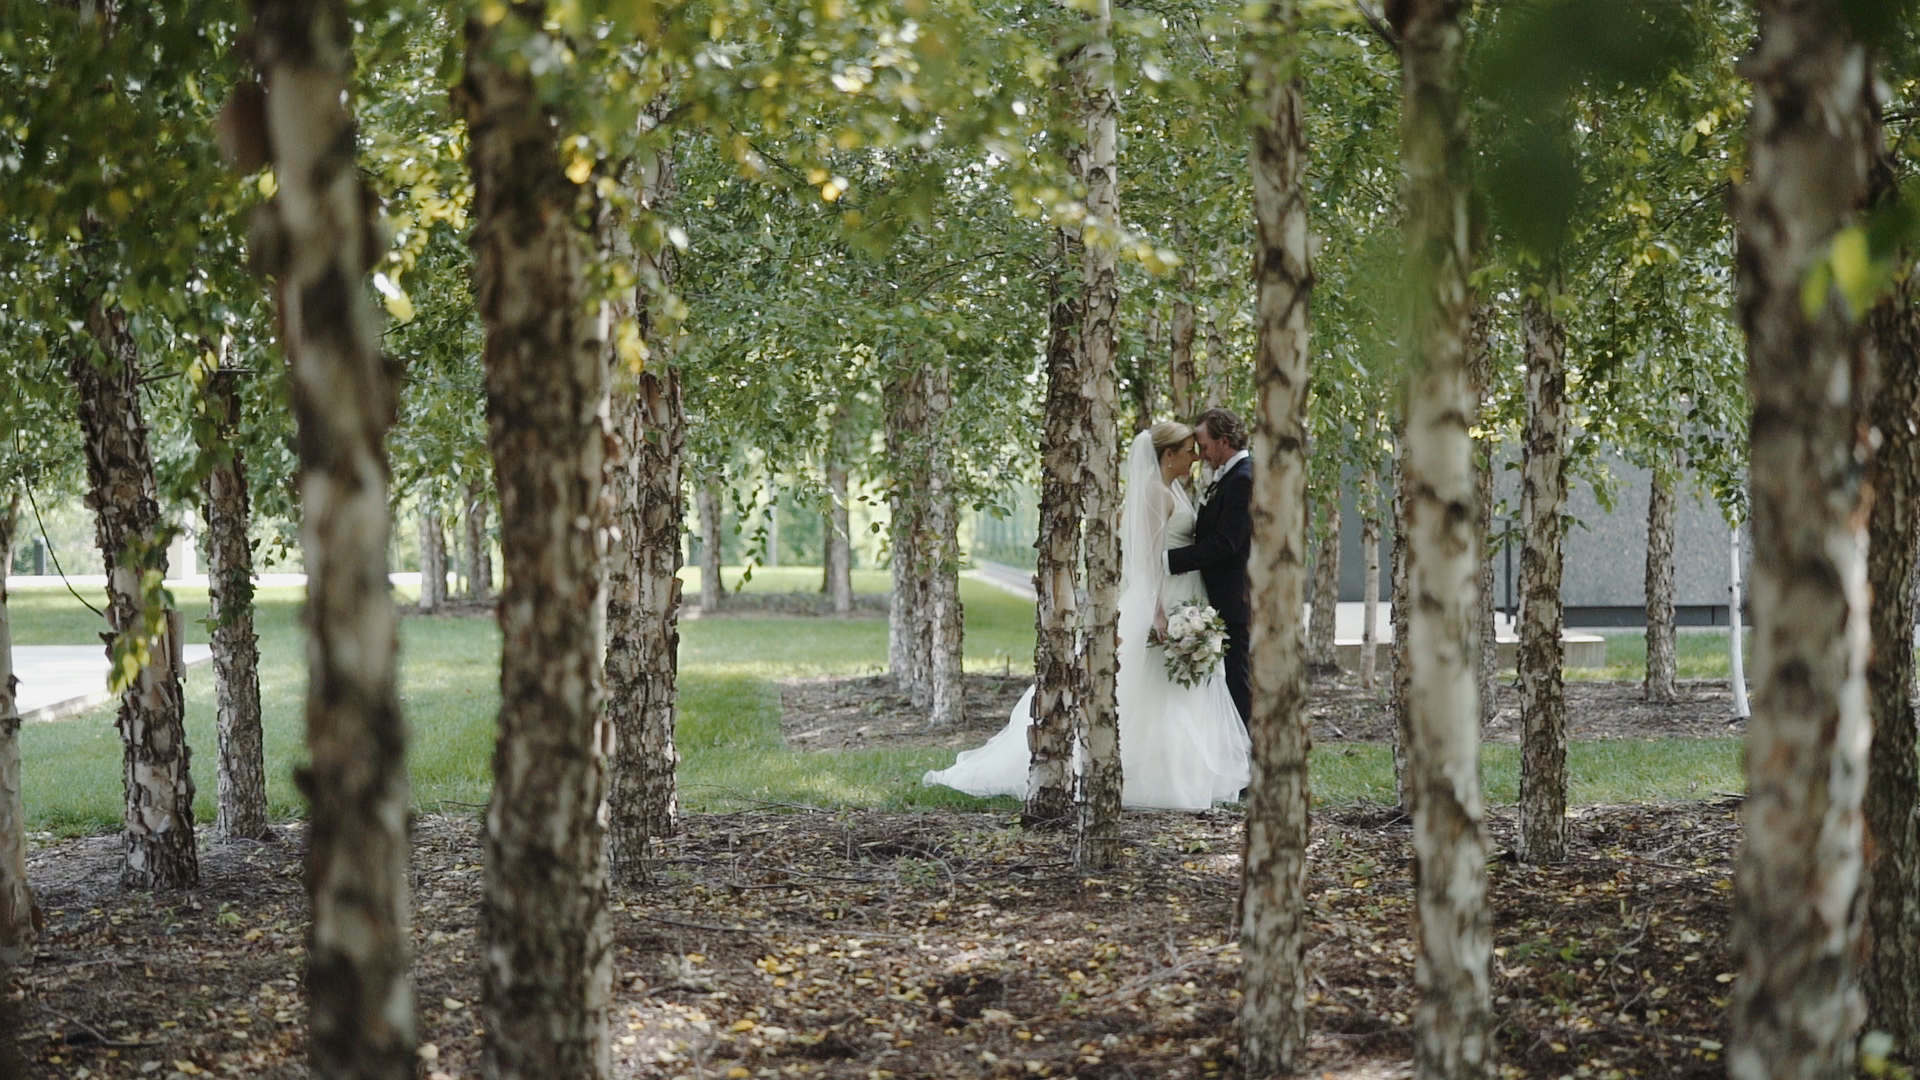 Forest Park Wedding Video - Photoshoot